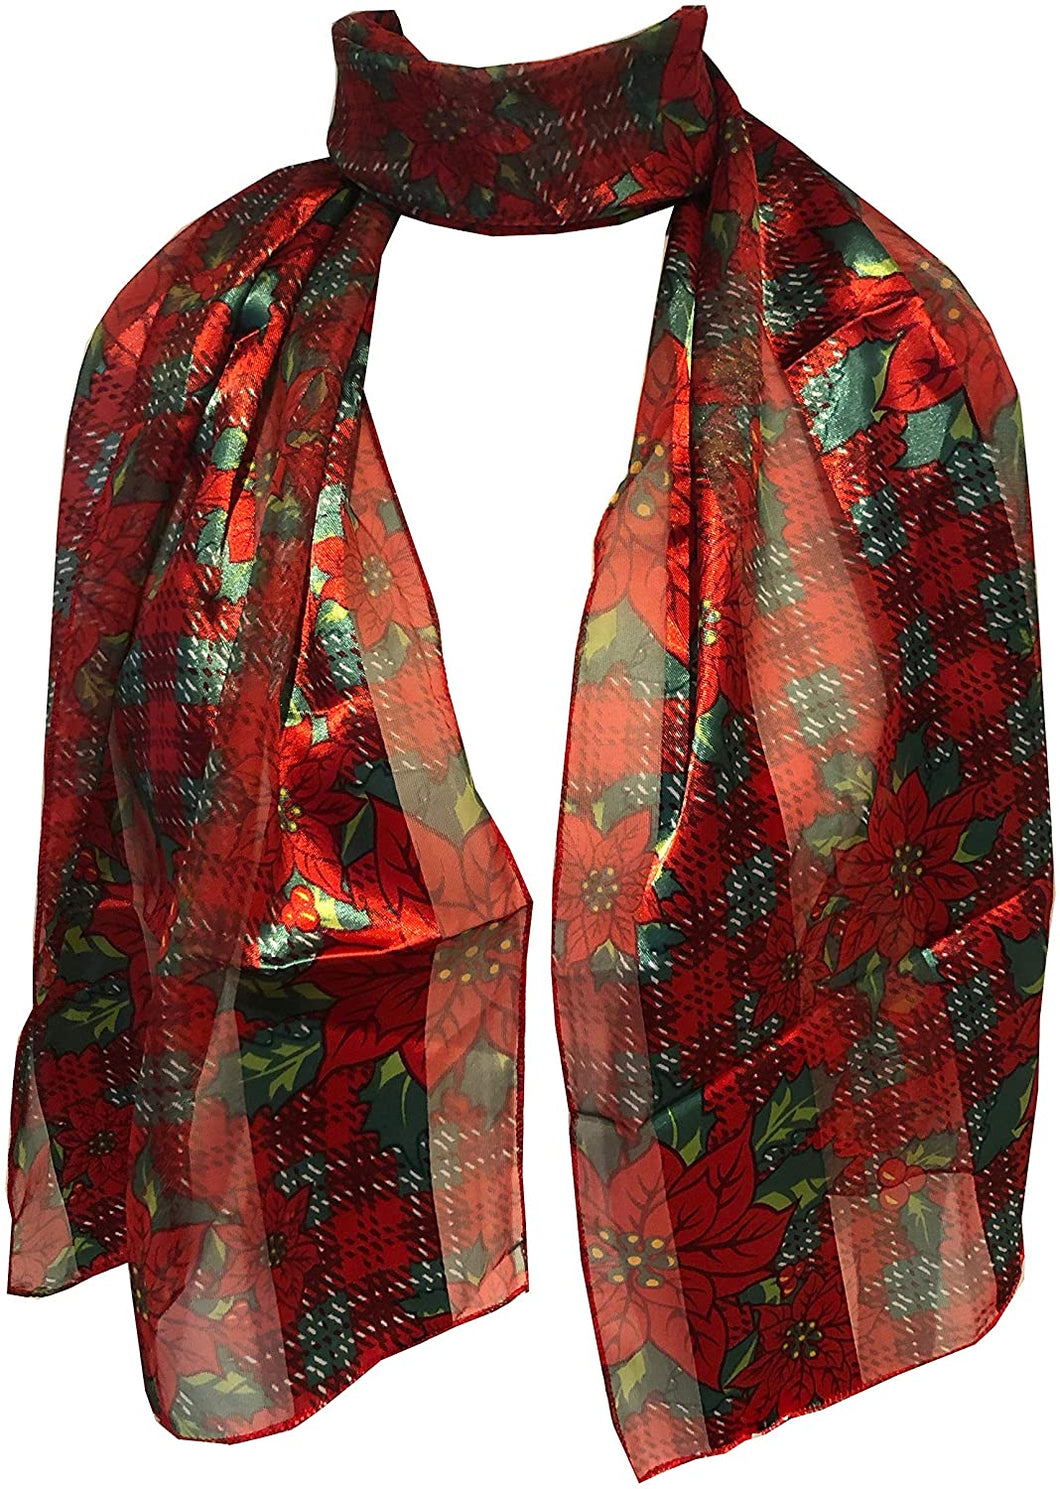 Pamper Yourself Now Red with red and Green Poinsettia Flower Design Scarf Thin Pretty Christmas Scarf